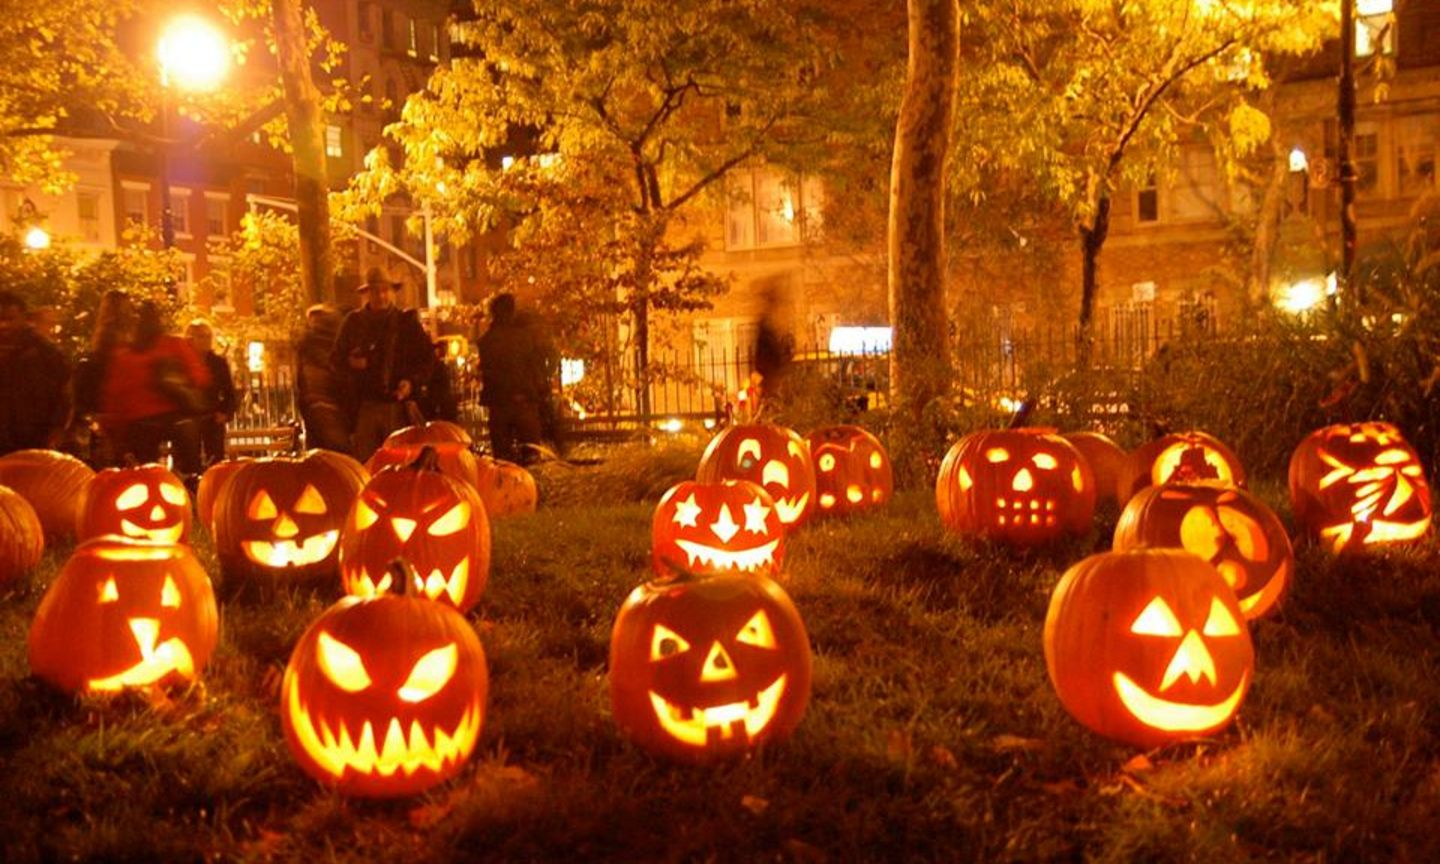 Halloween Town In Oregon 2020 The Spirit of Halloweentown | The Official Guide to Portland